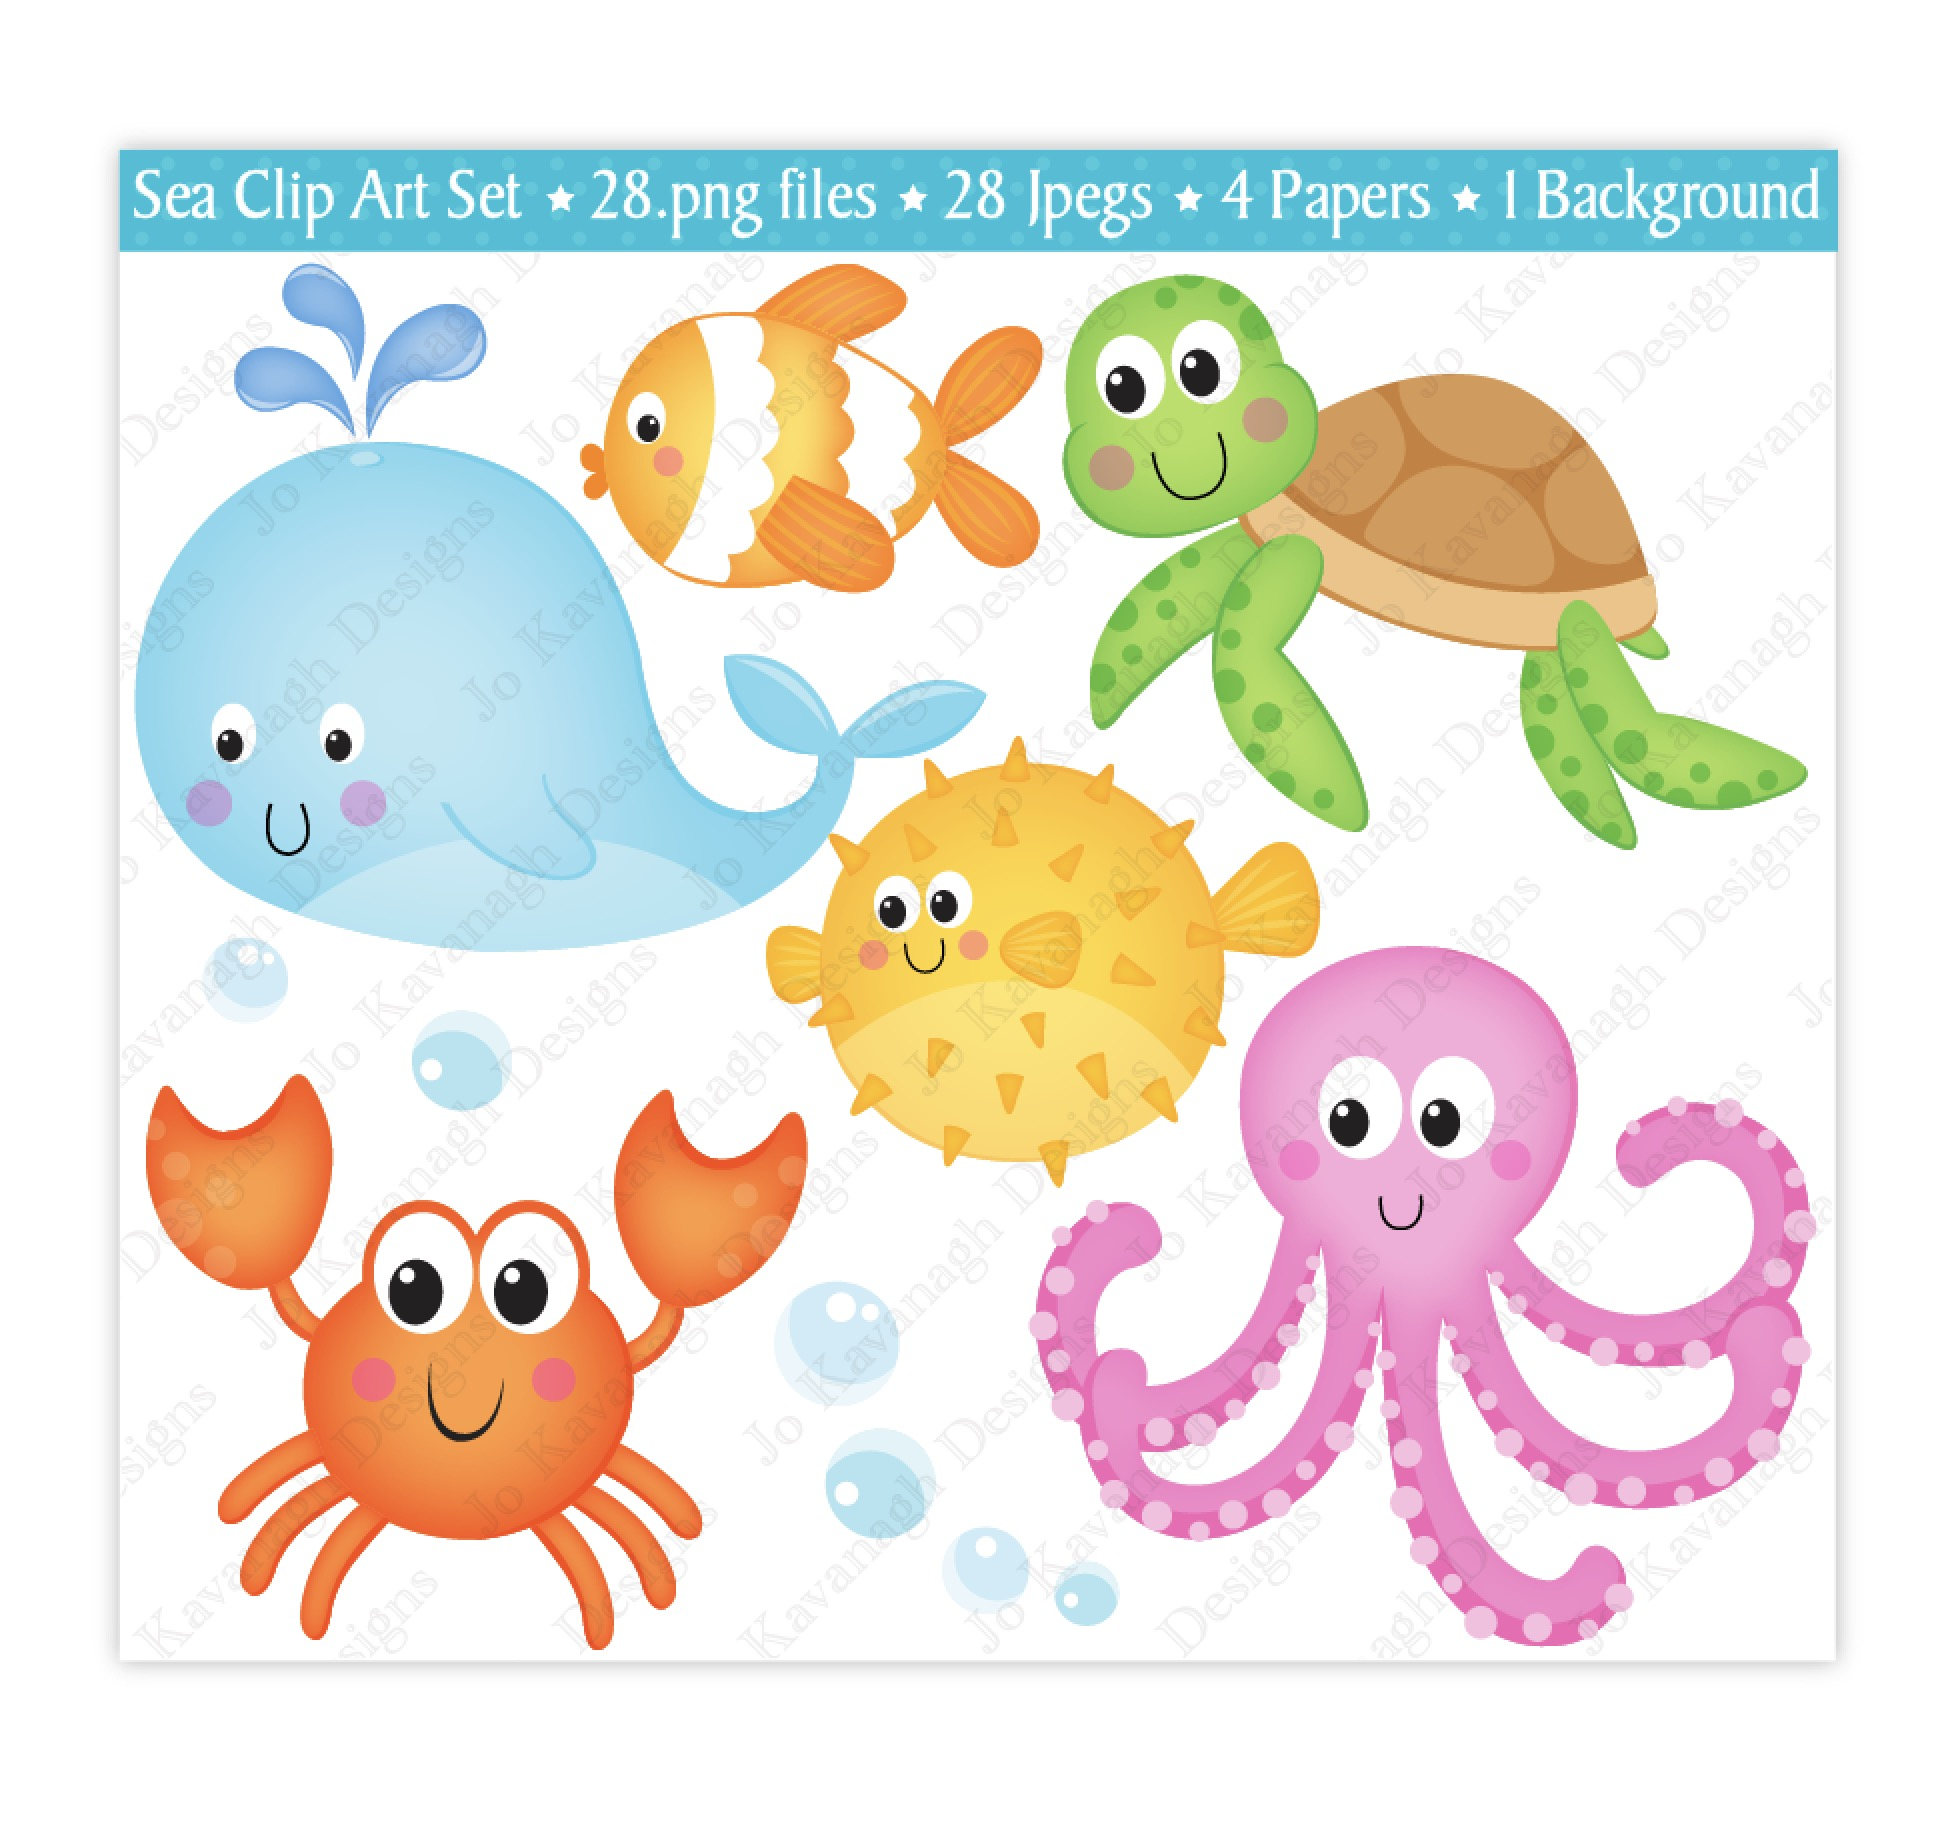 marine animals clipart at getdrawings com free for personal use rh getdrawings com marine clip art free marine clipart